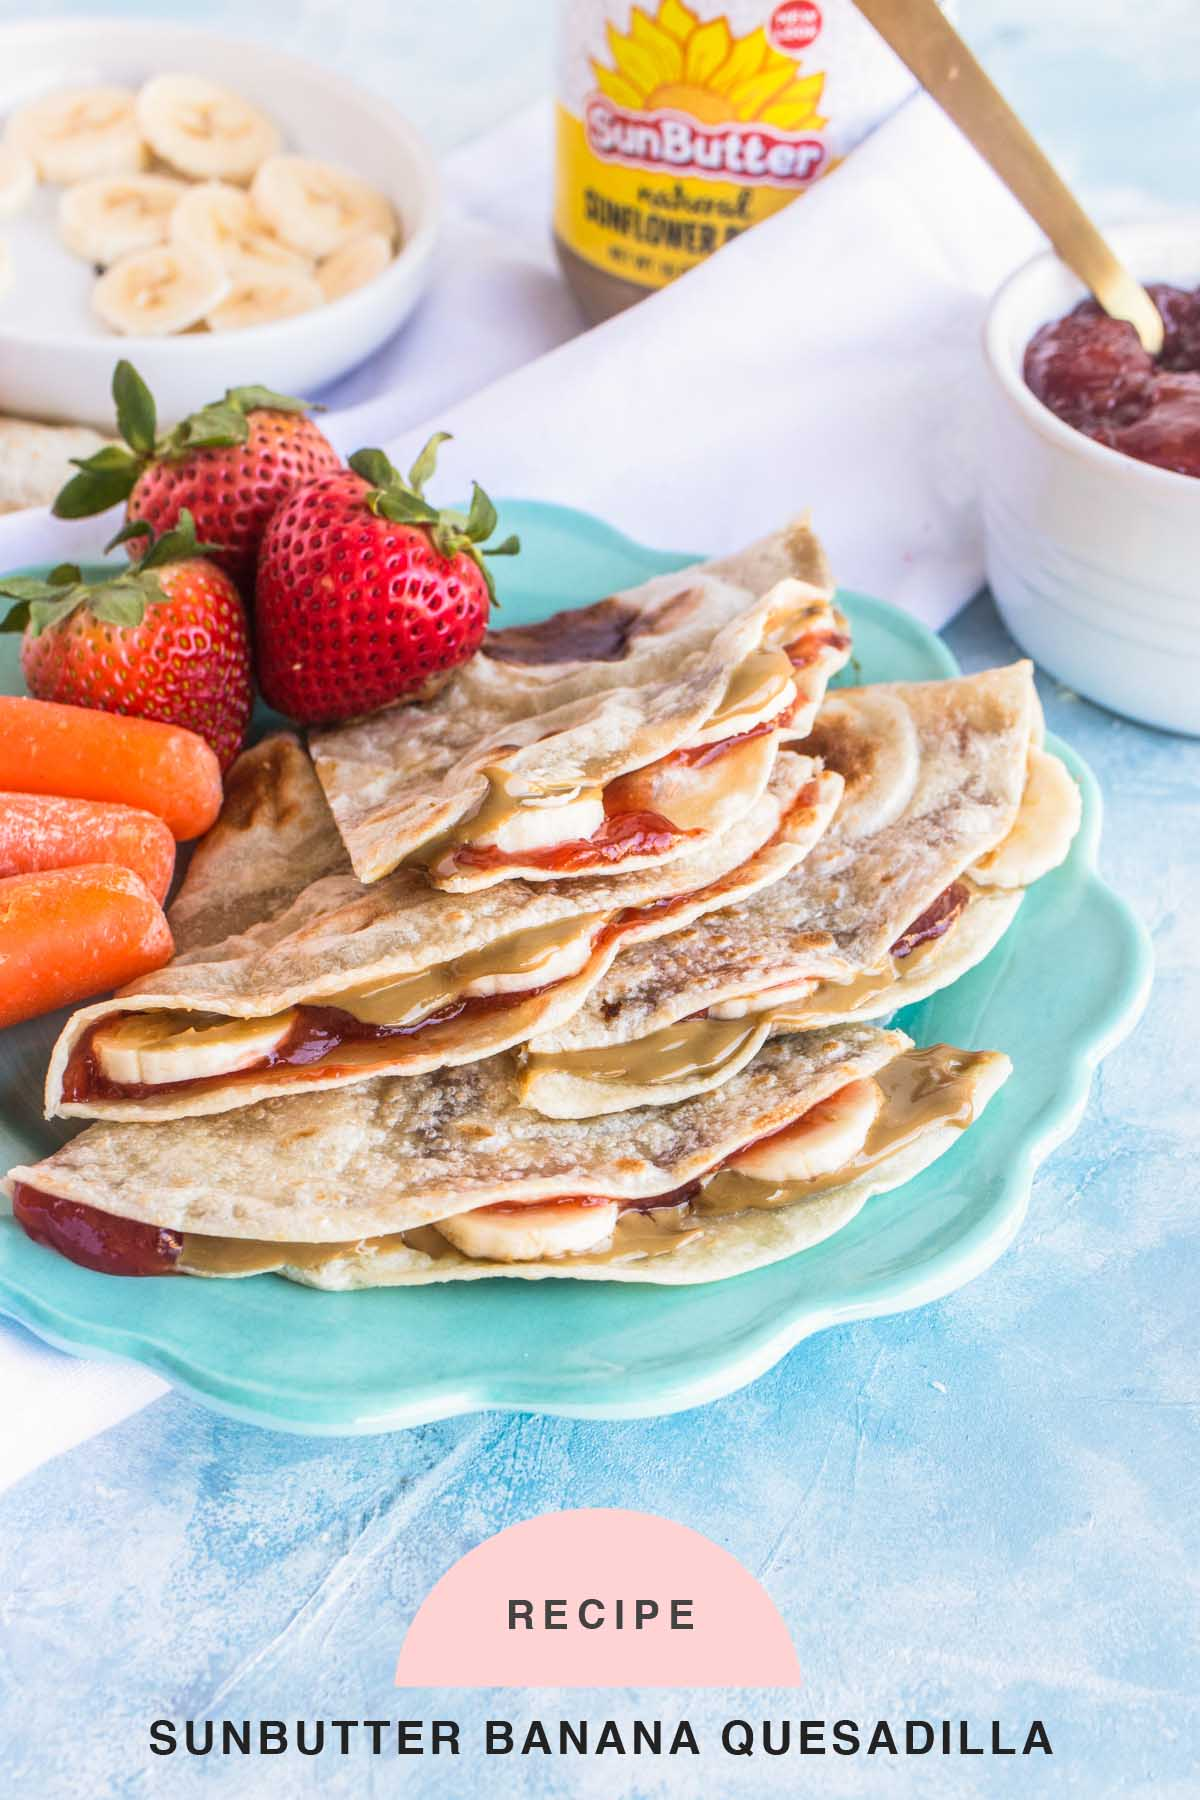 RECIPE Sunbutter Banana Quesadilla by top Houston lifestyle blogger Ashley Rose of Sugar & Cloth